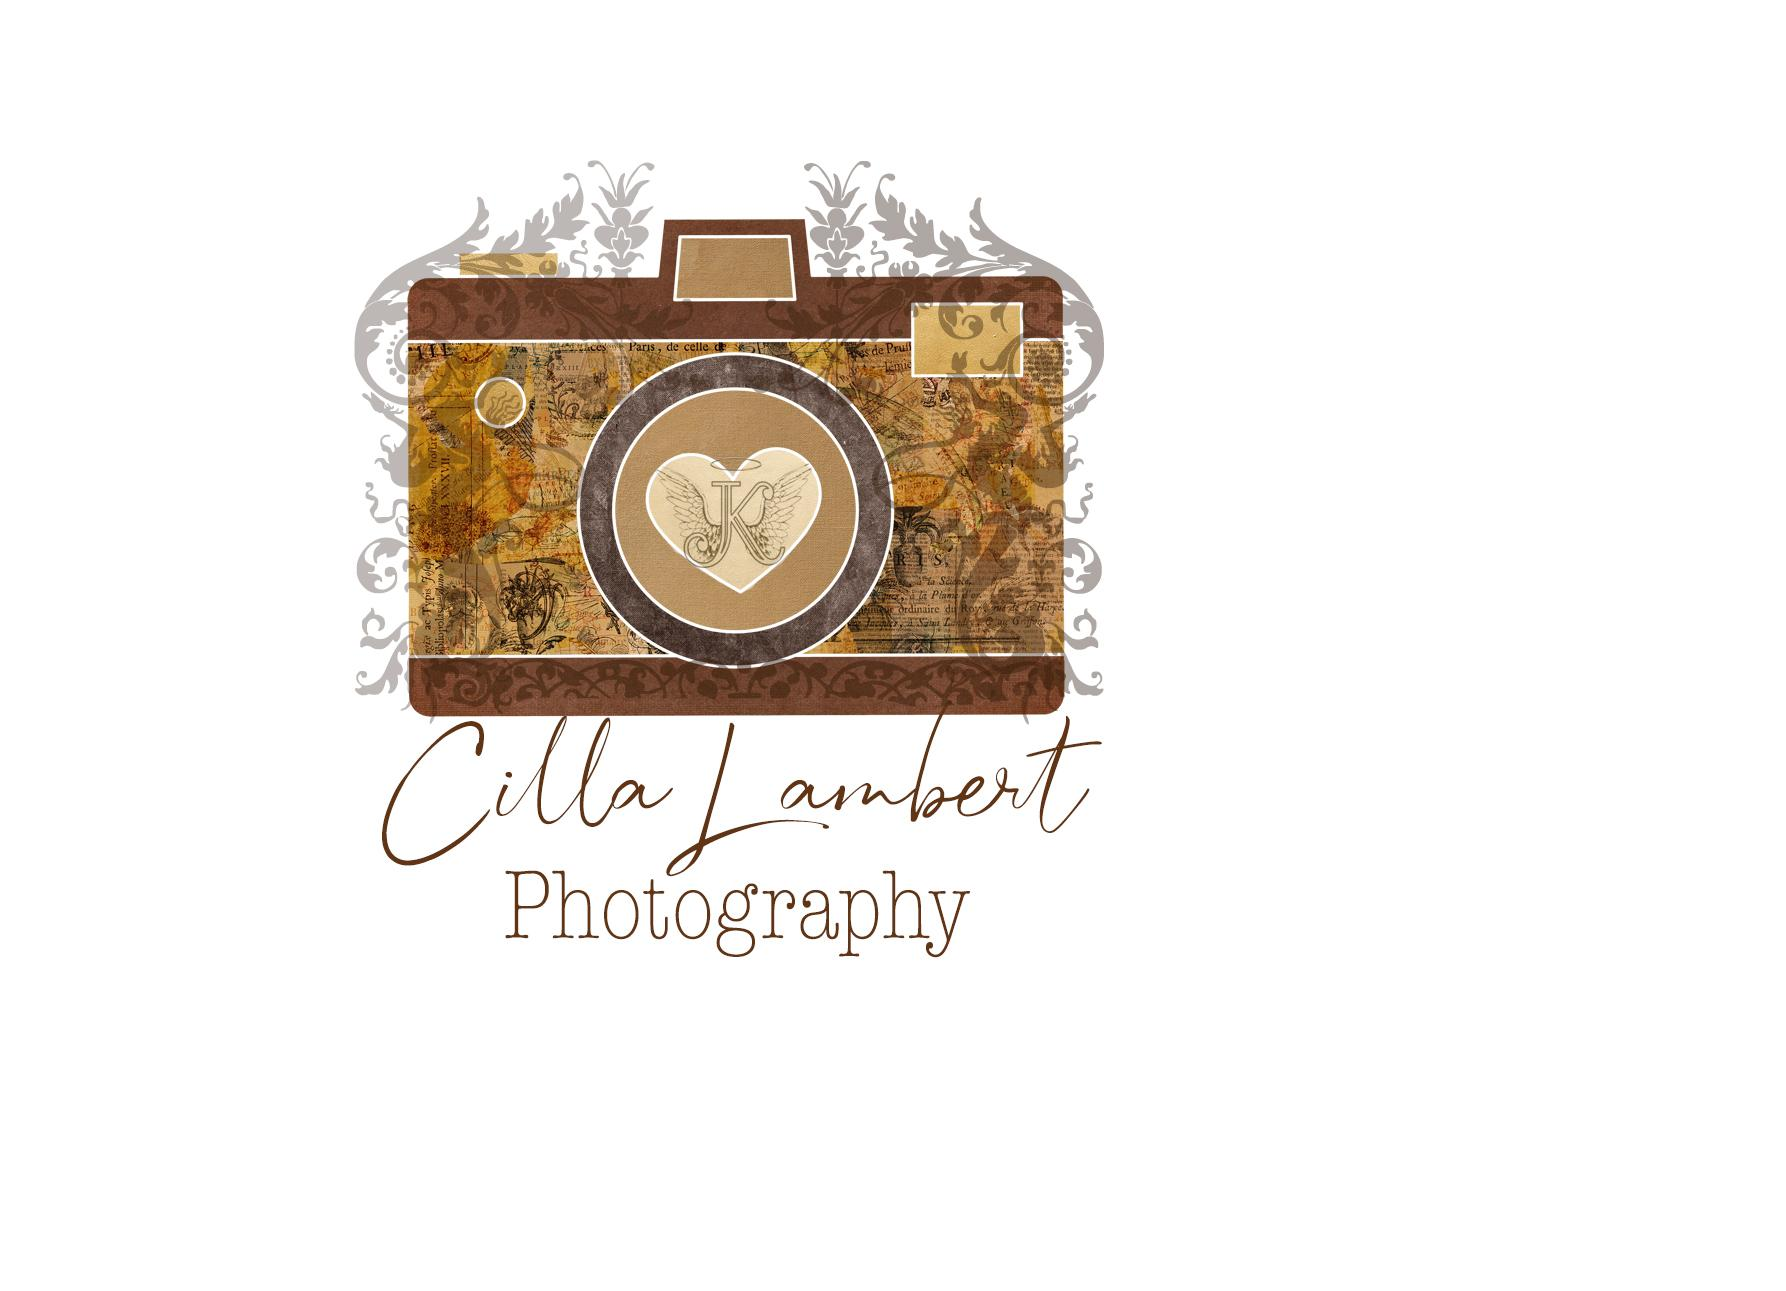 Cilla Lambert Photography